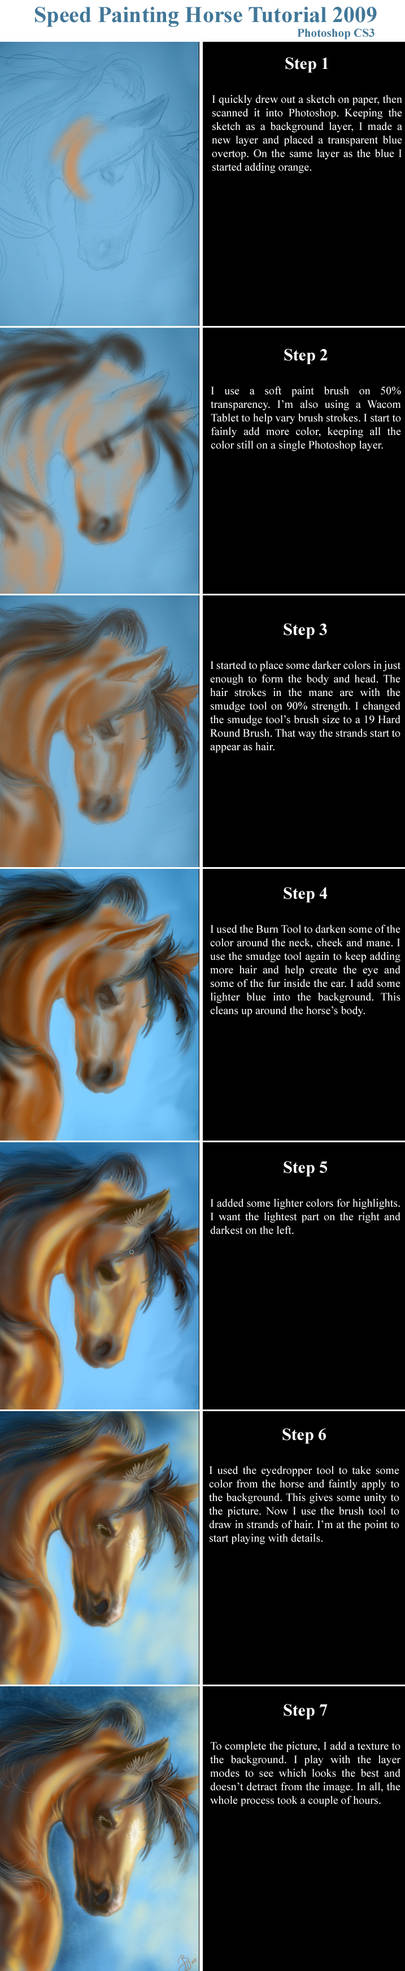 Speed Painting Horse Tutorial by bonbon3272